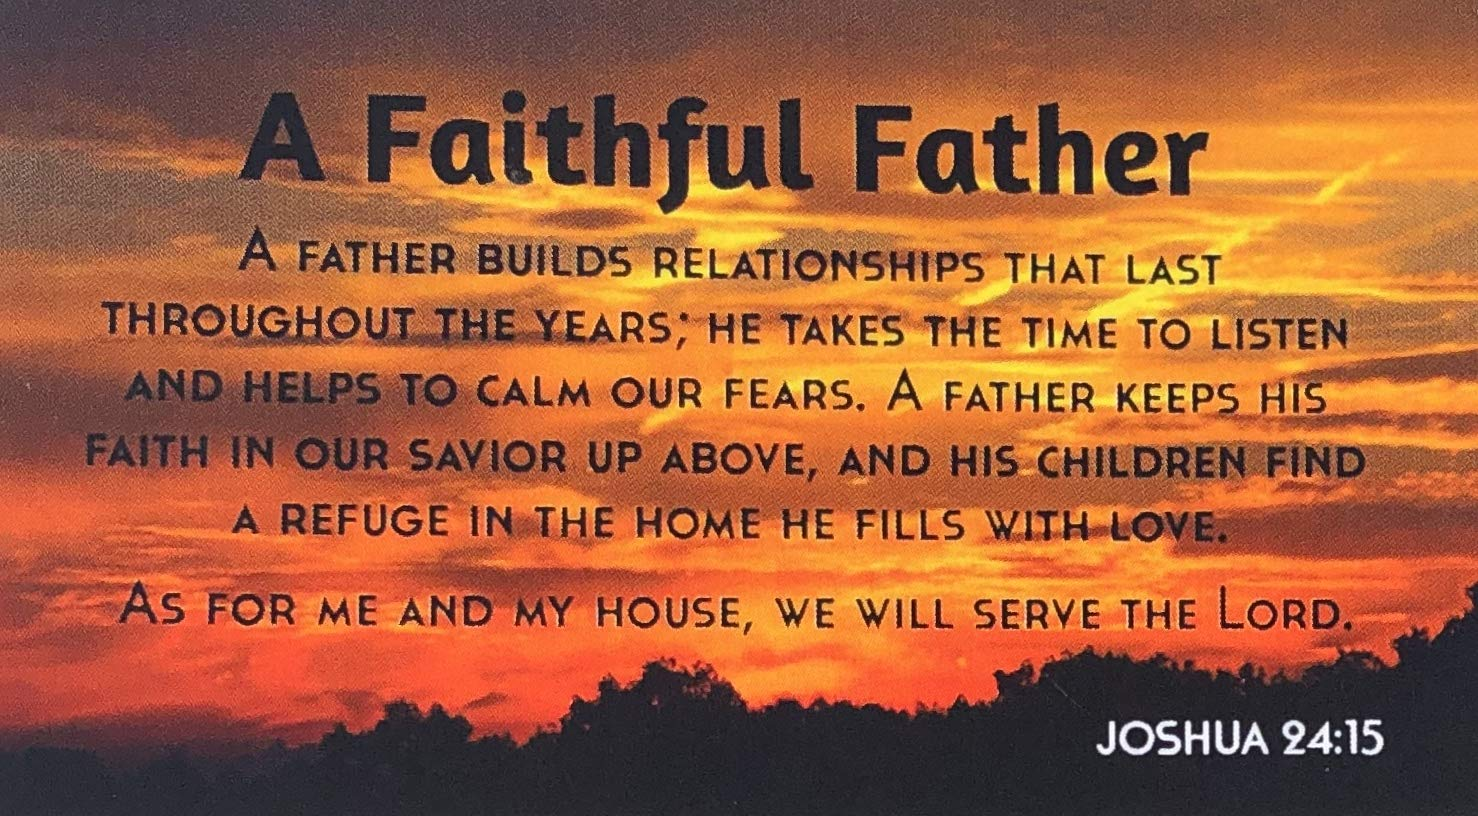 Biblebanz Fathers Day Faithful Father Joshua 24:15 Bulk Christian Magnets for Dad (10 Count)